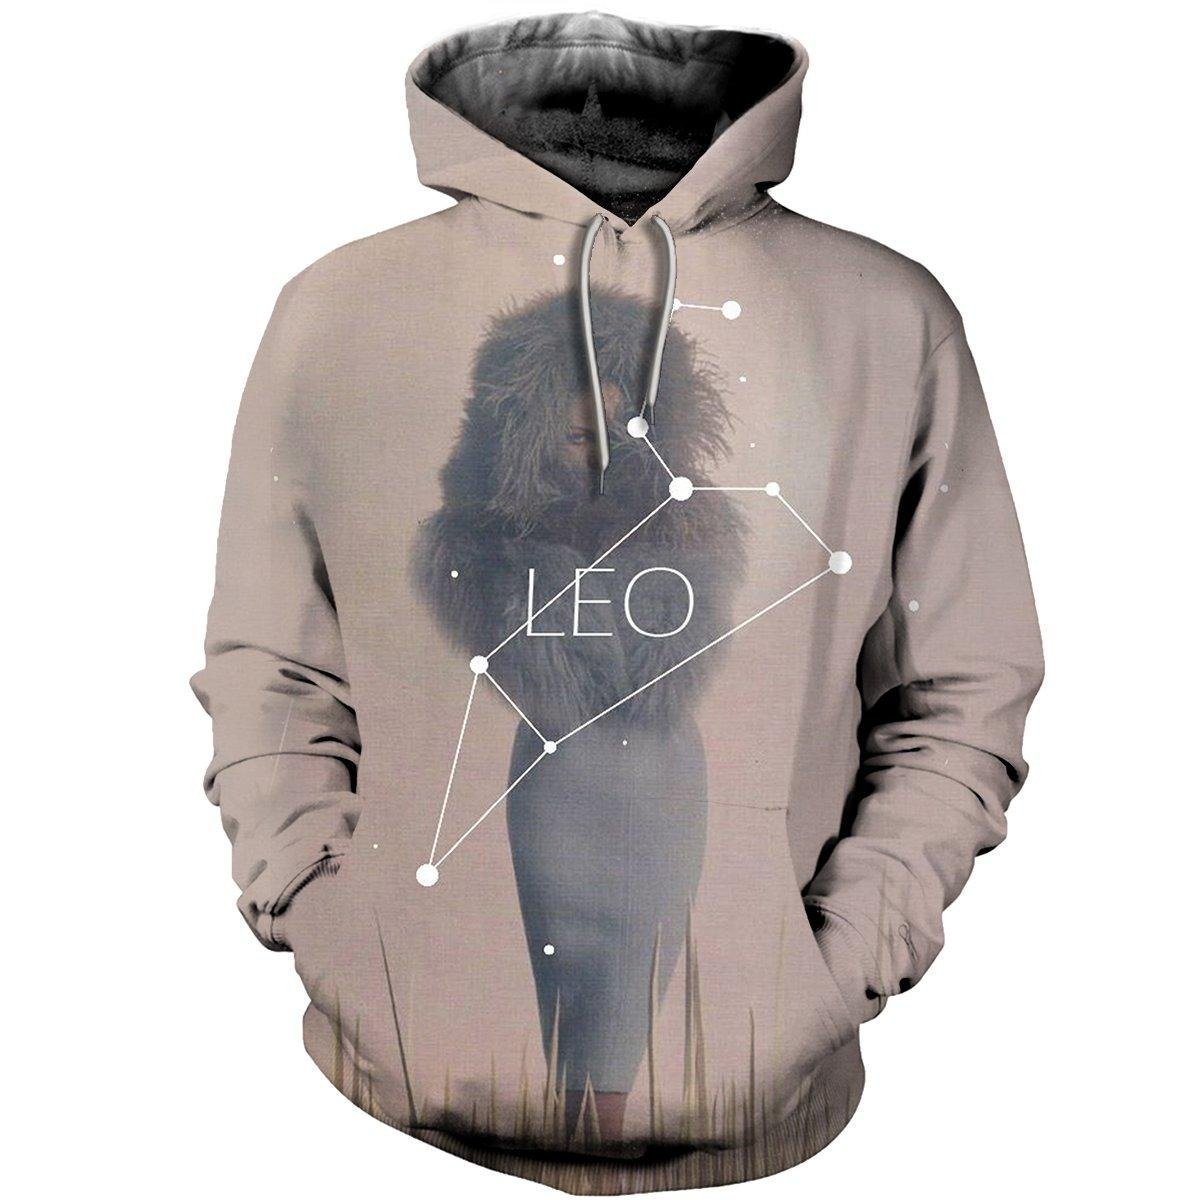 3D ALL OVER PRINTED LEO ZODIAC T SHIRT NTH160866-Apparel-NTH-Hoodie-S-Vibe Cosy™